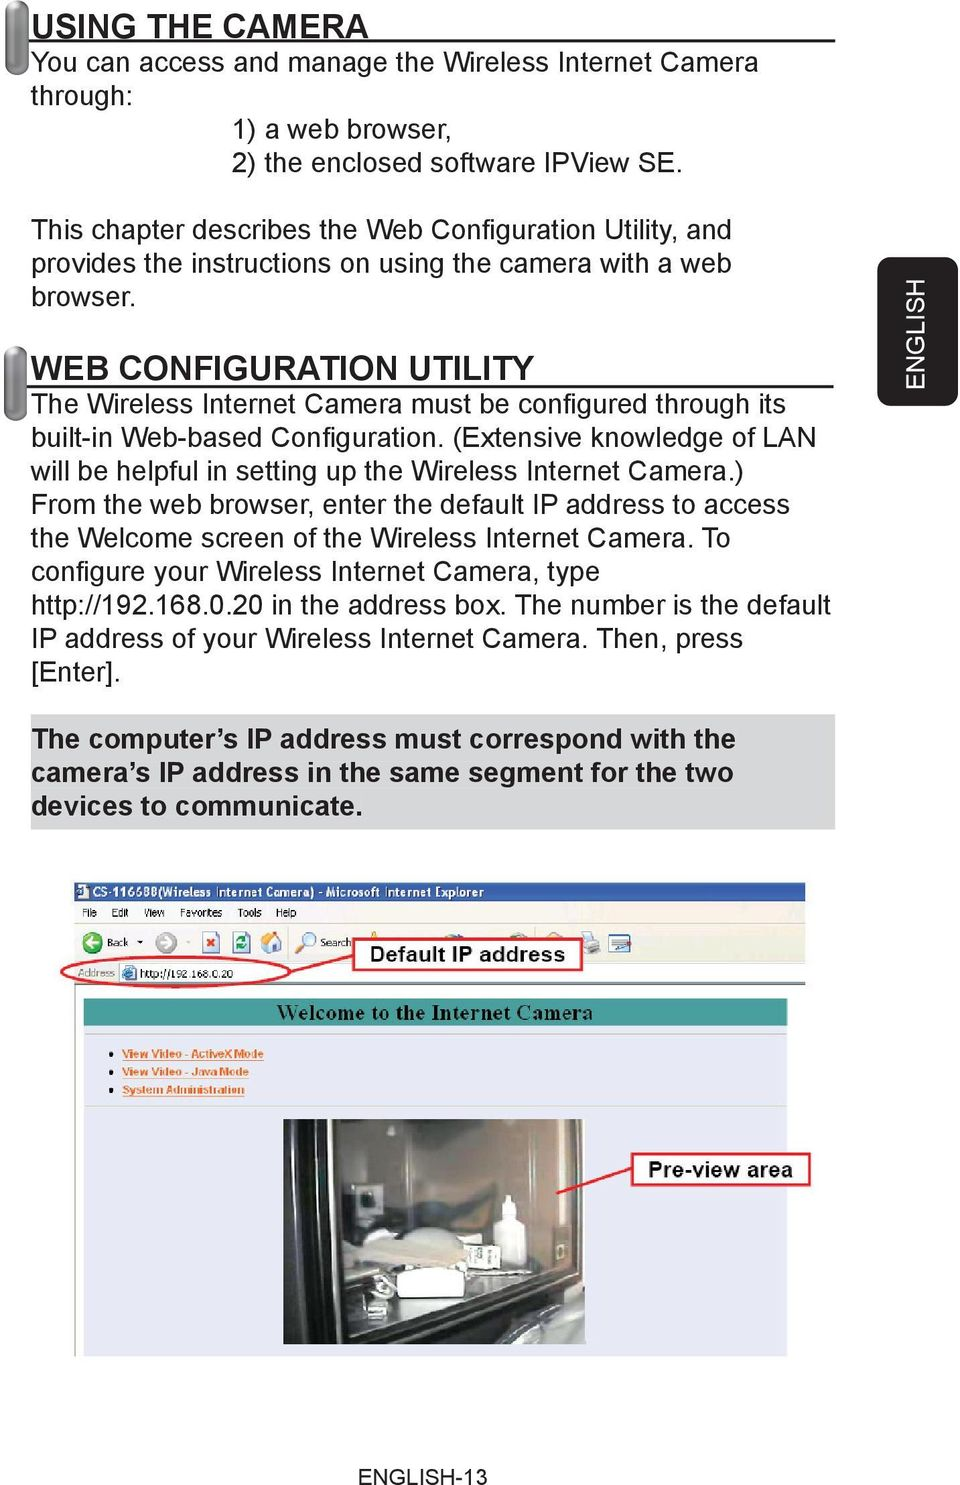 WEB CONFIGURATION UTILITY The Wireless Internet Camera must be confi gured through its built-in Web-based Confi guration.